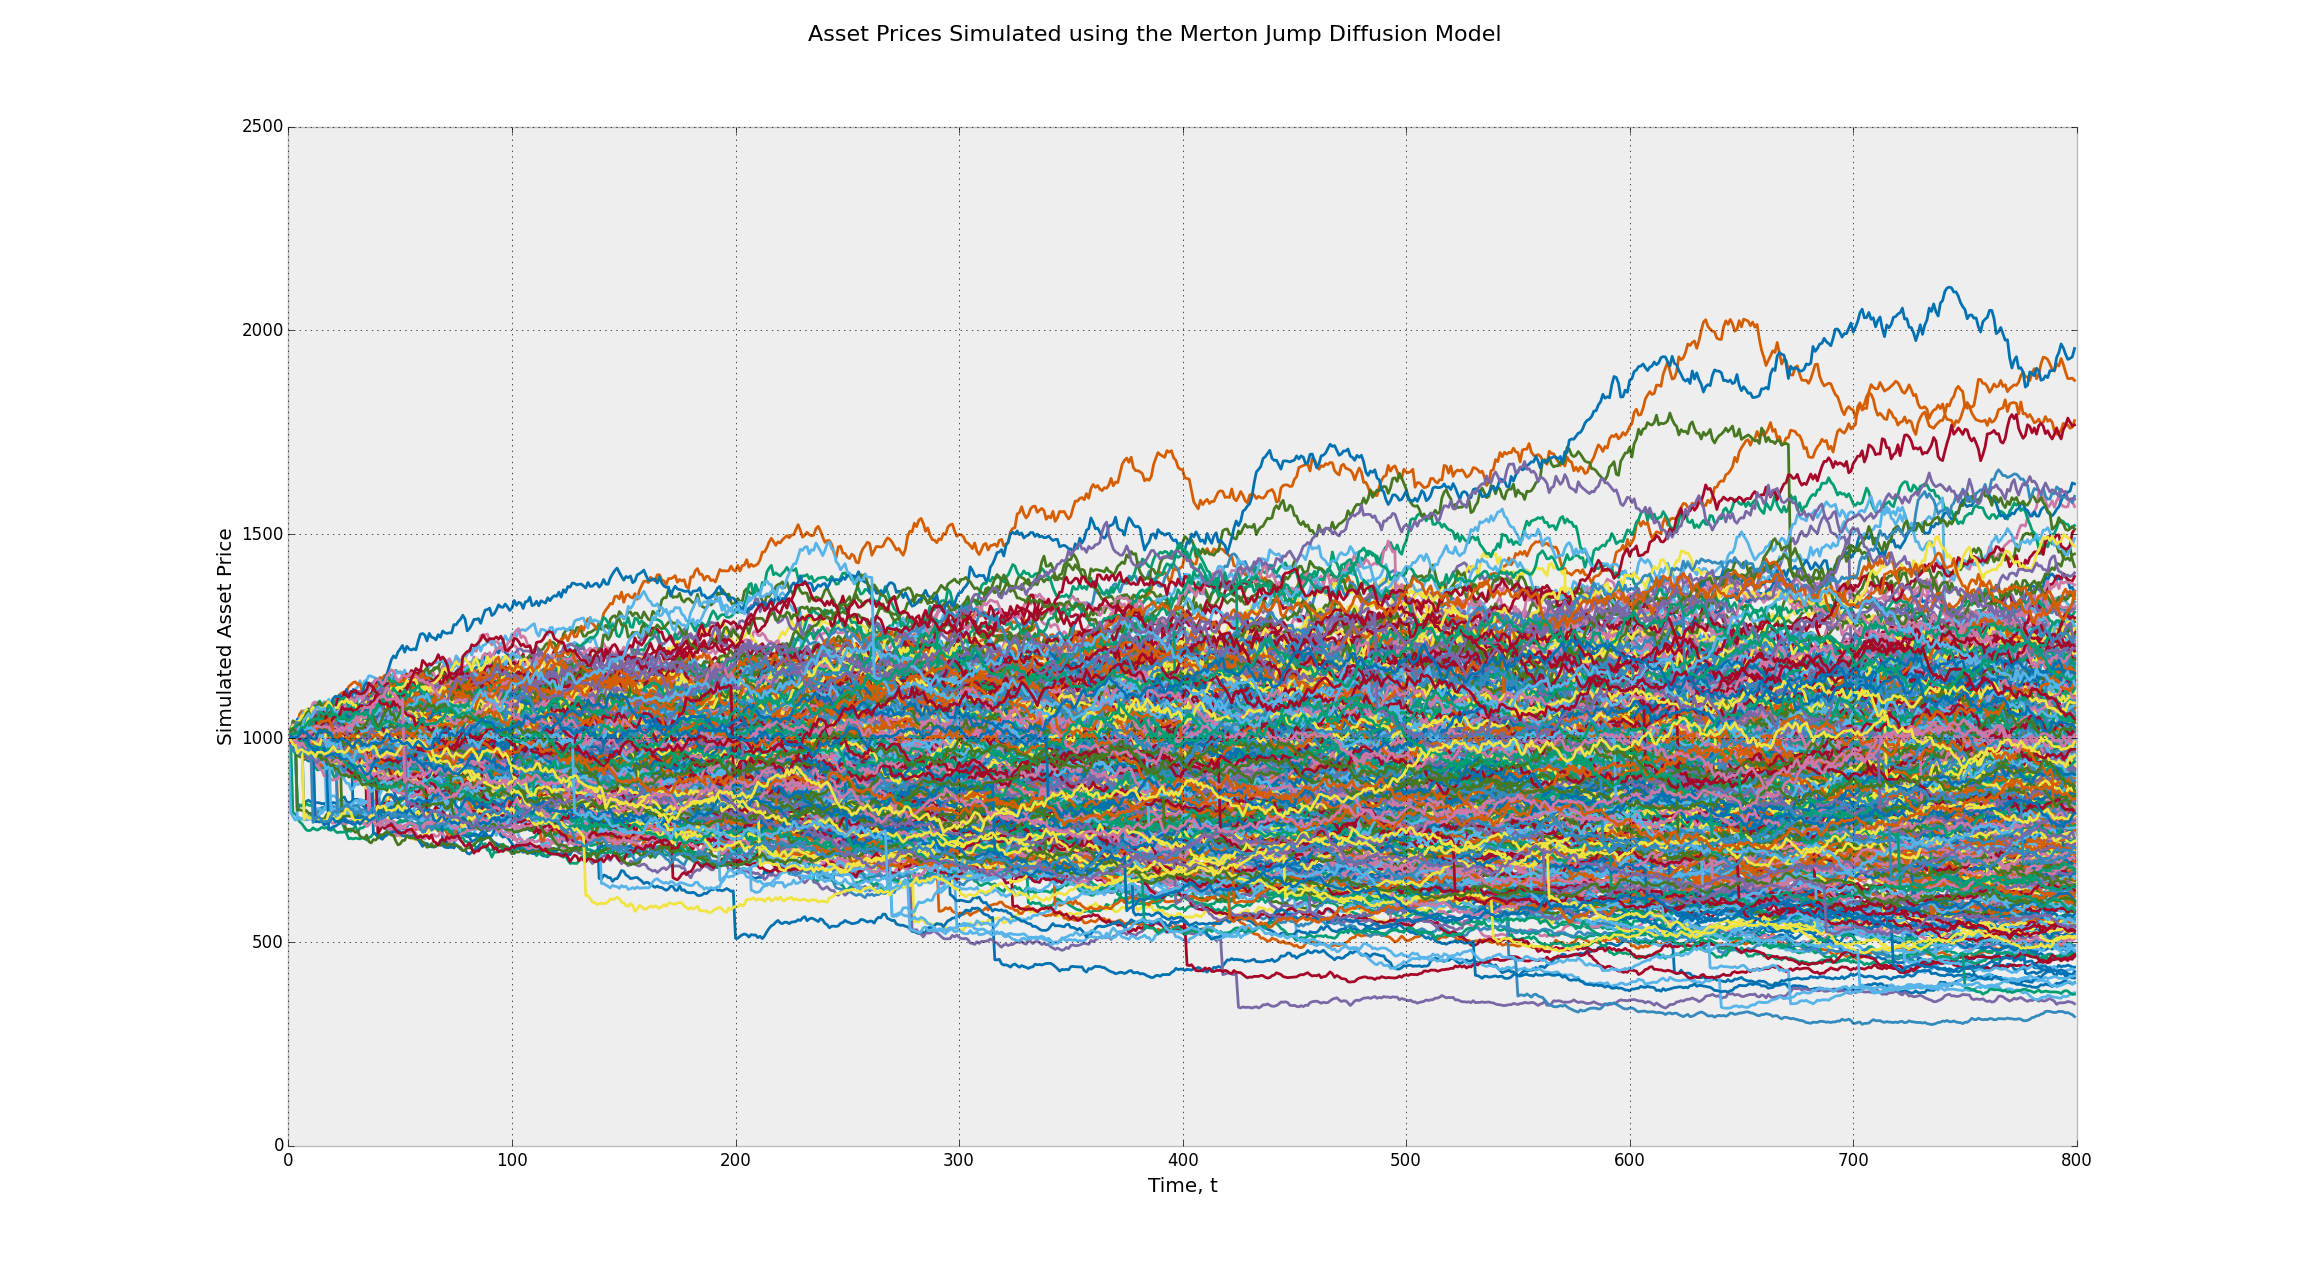 Asset Prices Simulated using the Merton Jump Diffusion Geometric Brownian Motion Stochastic Process - Many